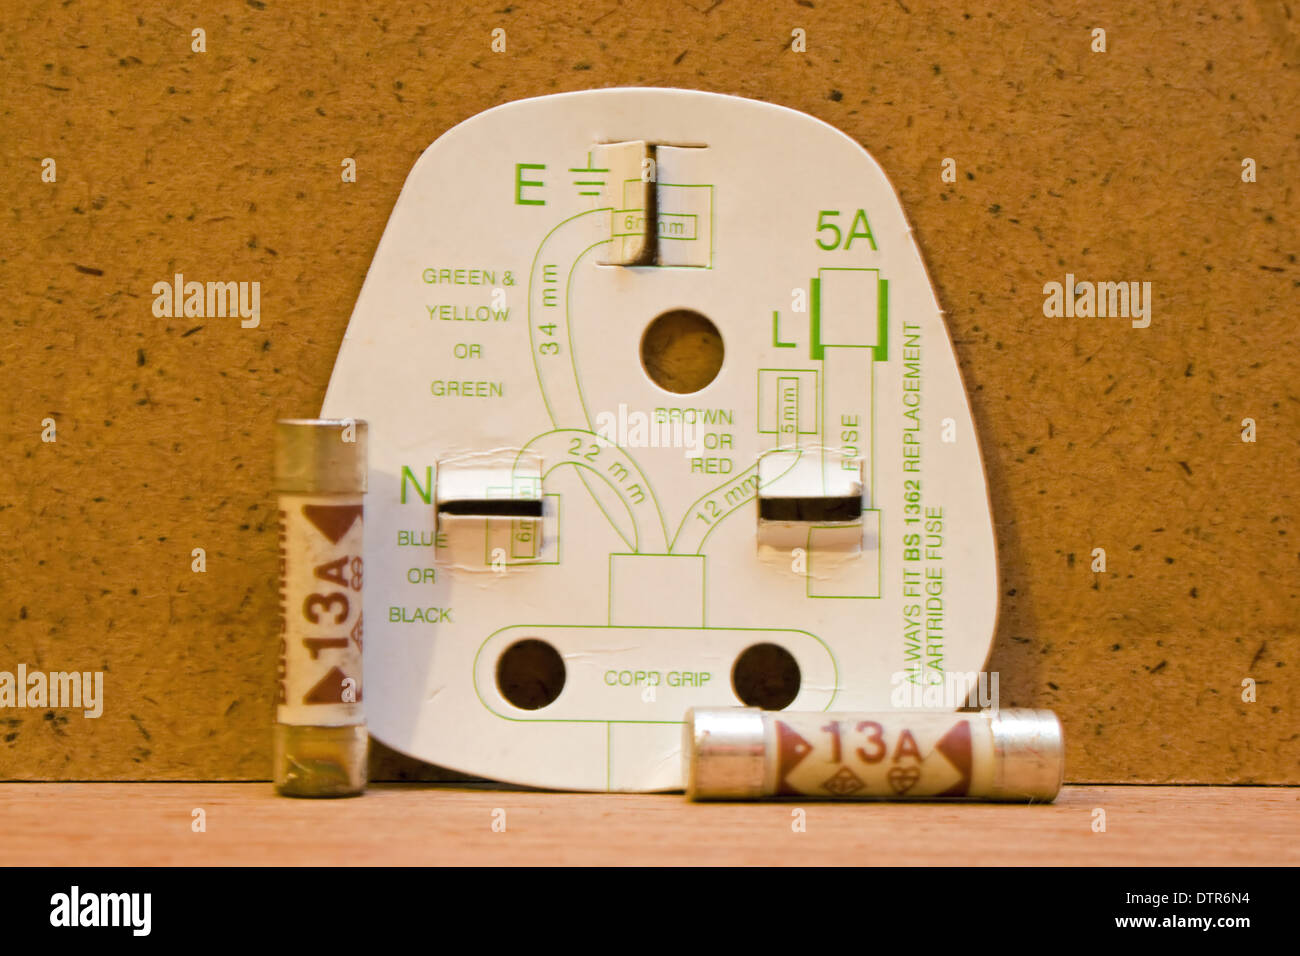 uk three pin plug wiring diagram with 13amp fuses DTR6N4 uk three pin plug wiring diagram with 13amp fuses stock photo plug wiring diagram at nearapp.co